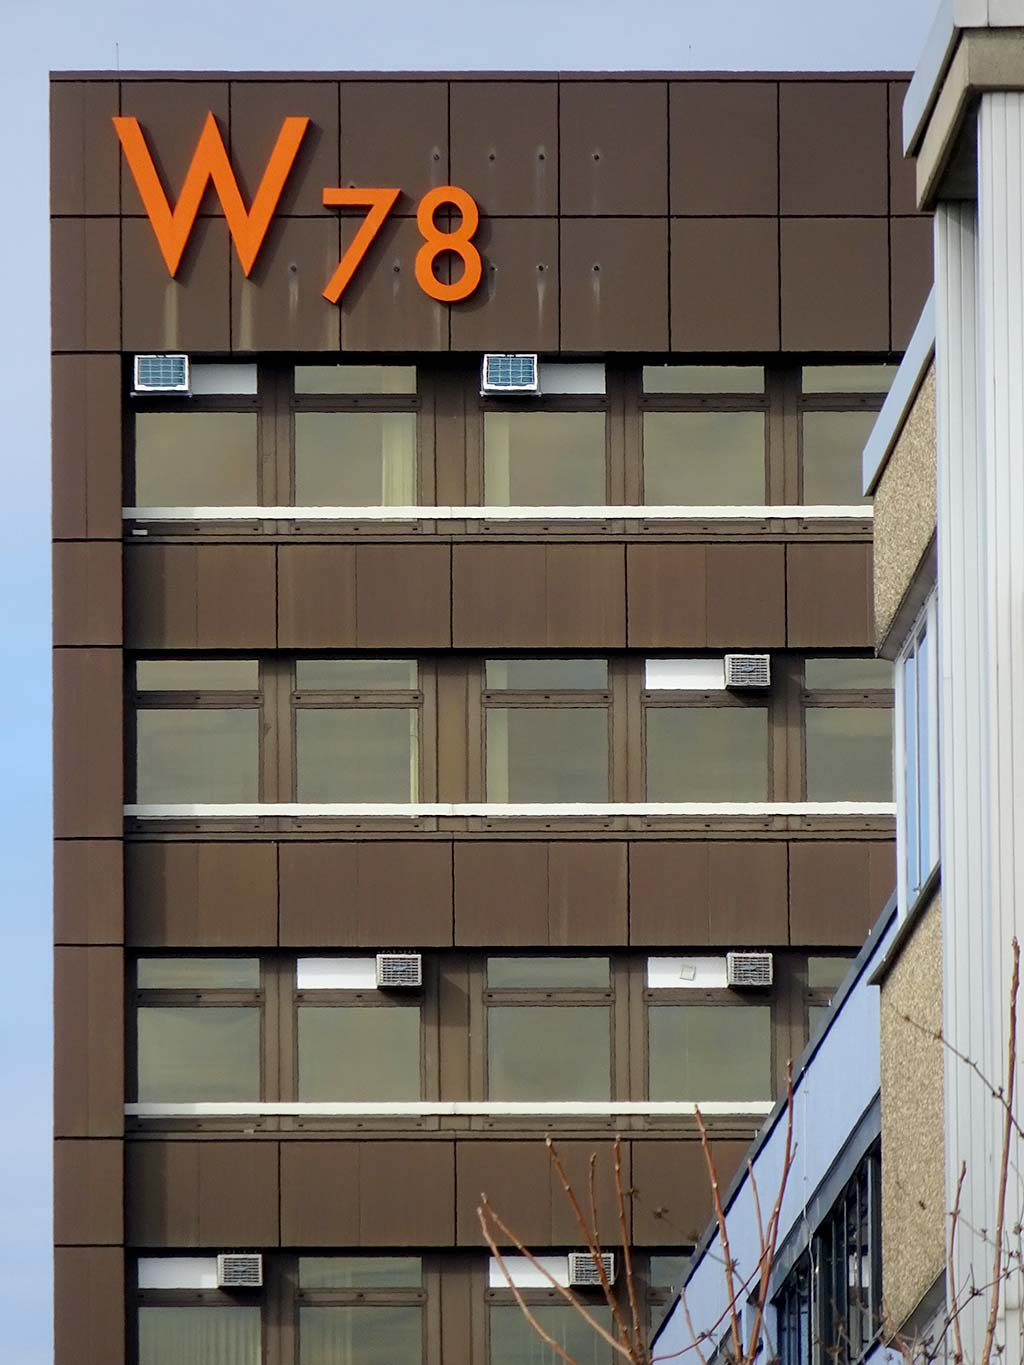 W78 in Frankfurt am Main